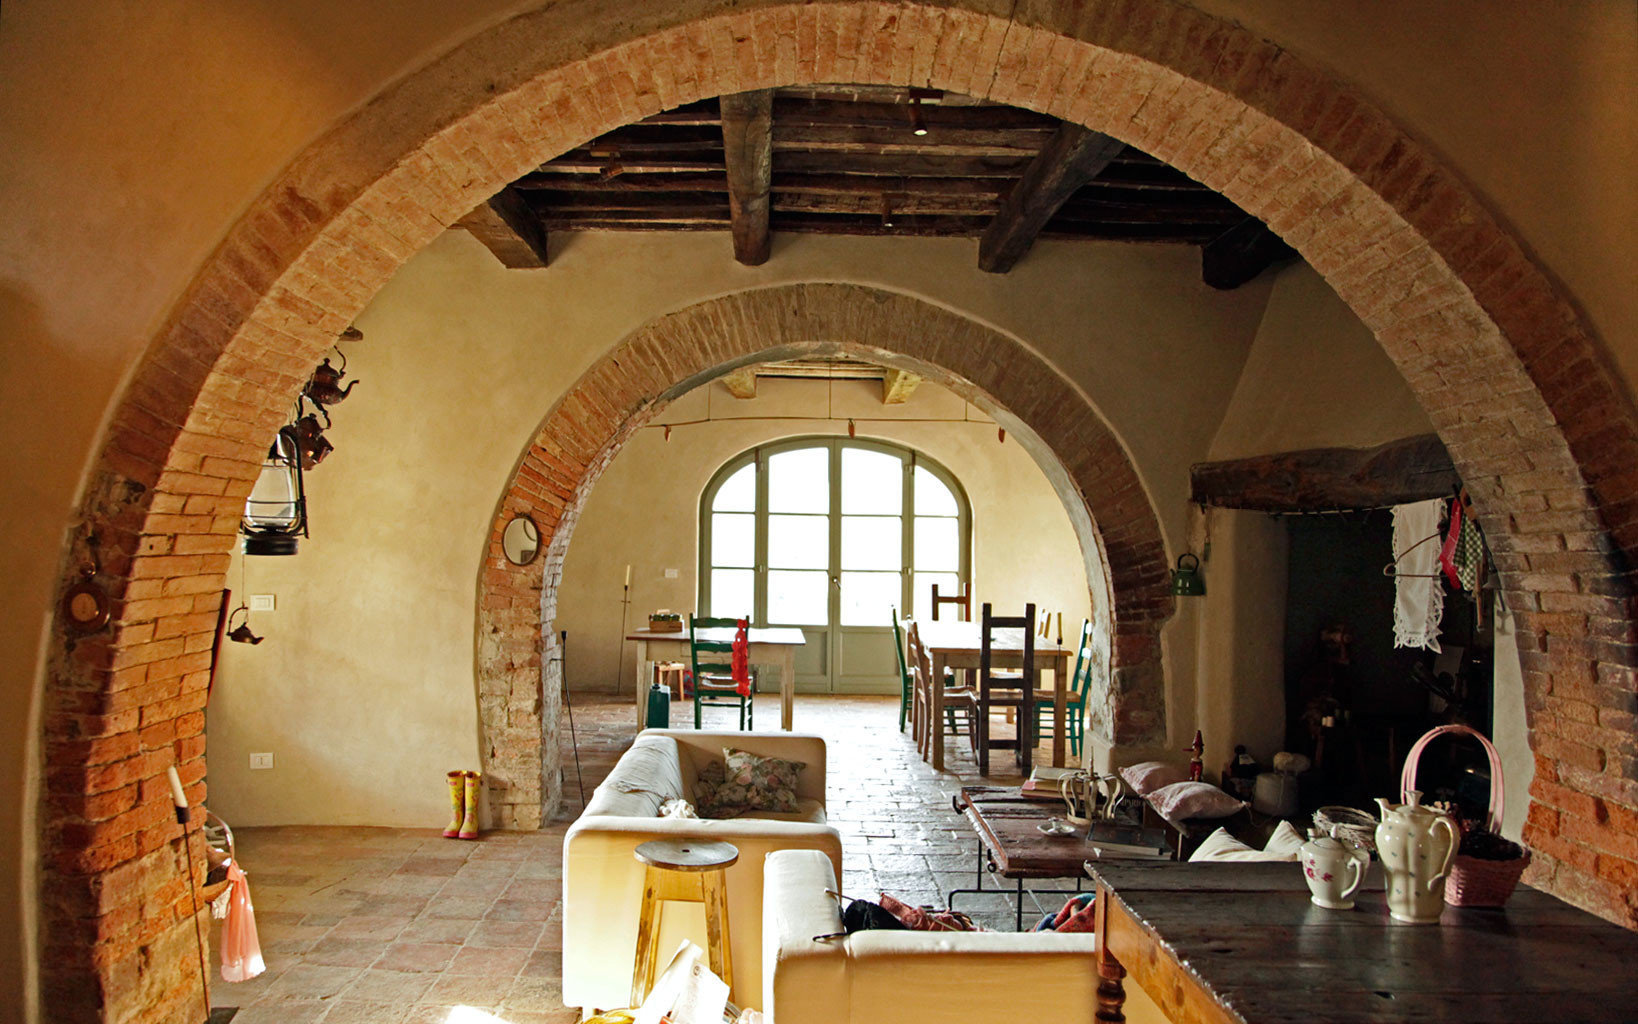 B&B Dining Drink Eat Luxury Romantic arch building Architecture ancient history chapel arcade tourist attraction vault place of worship crypt stone